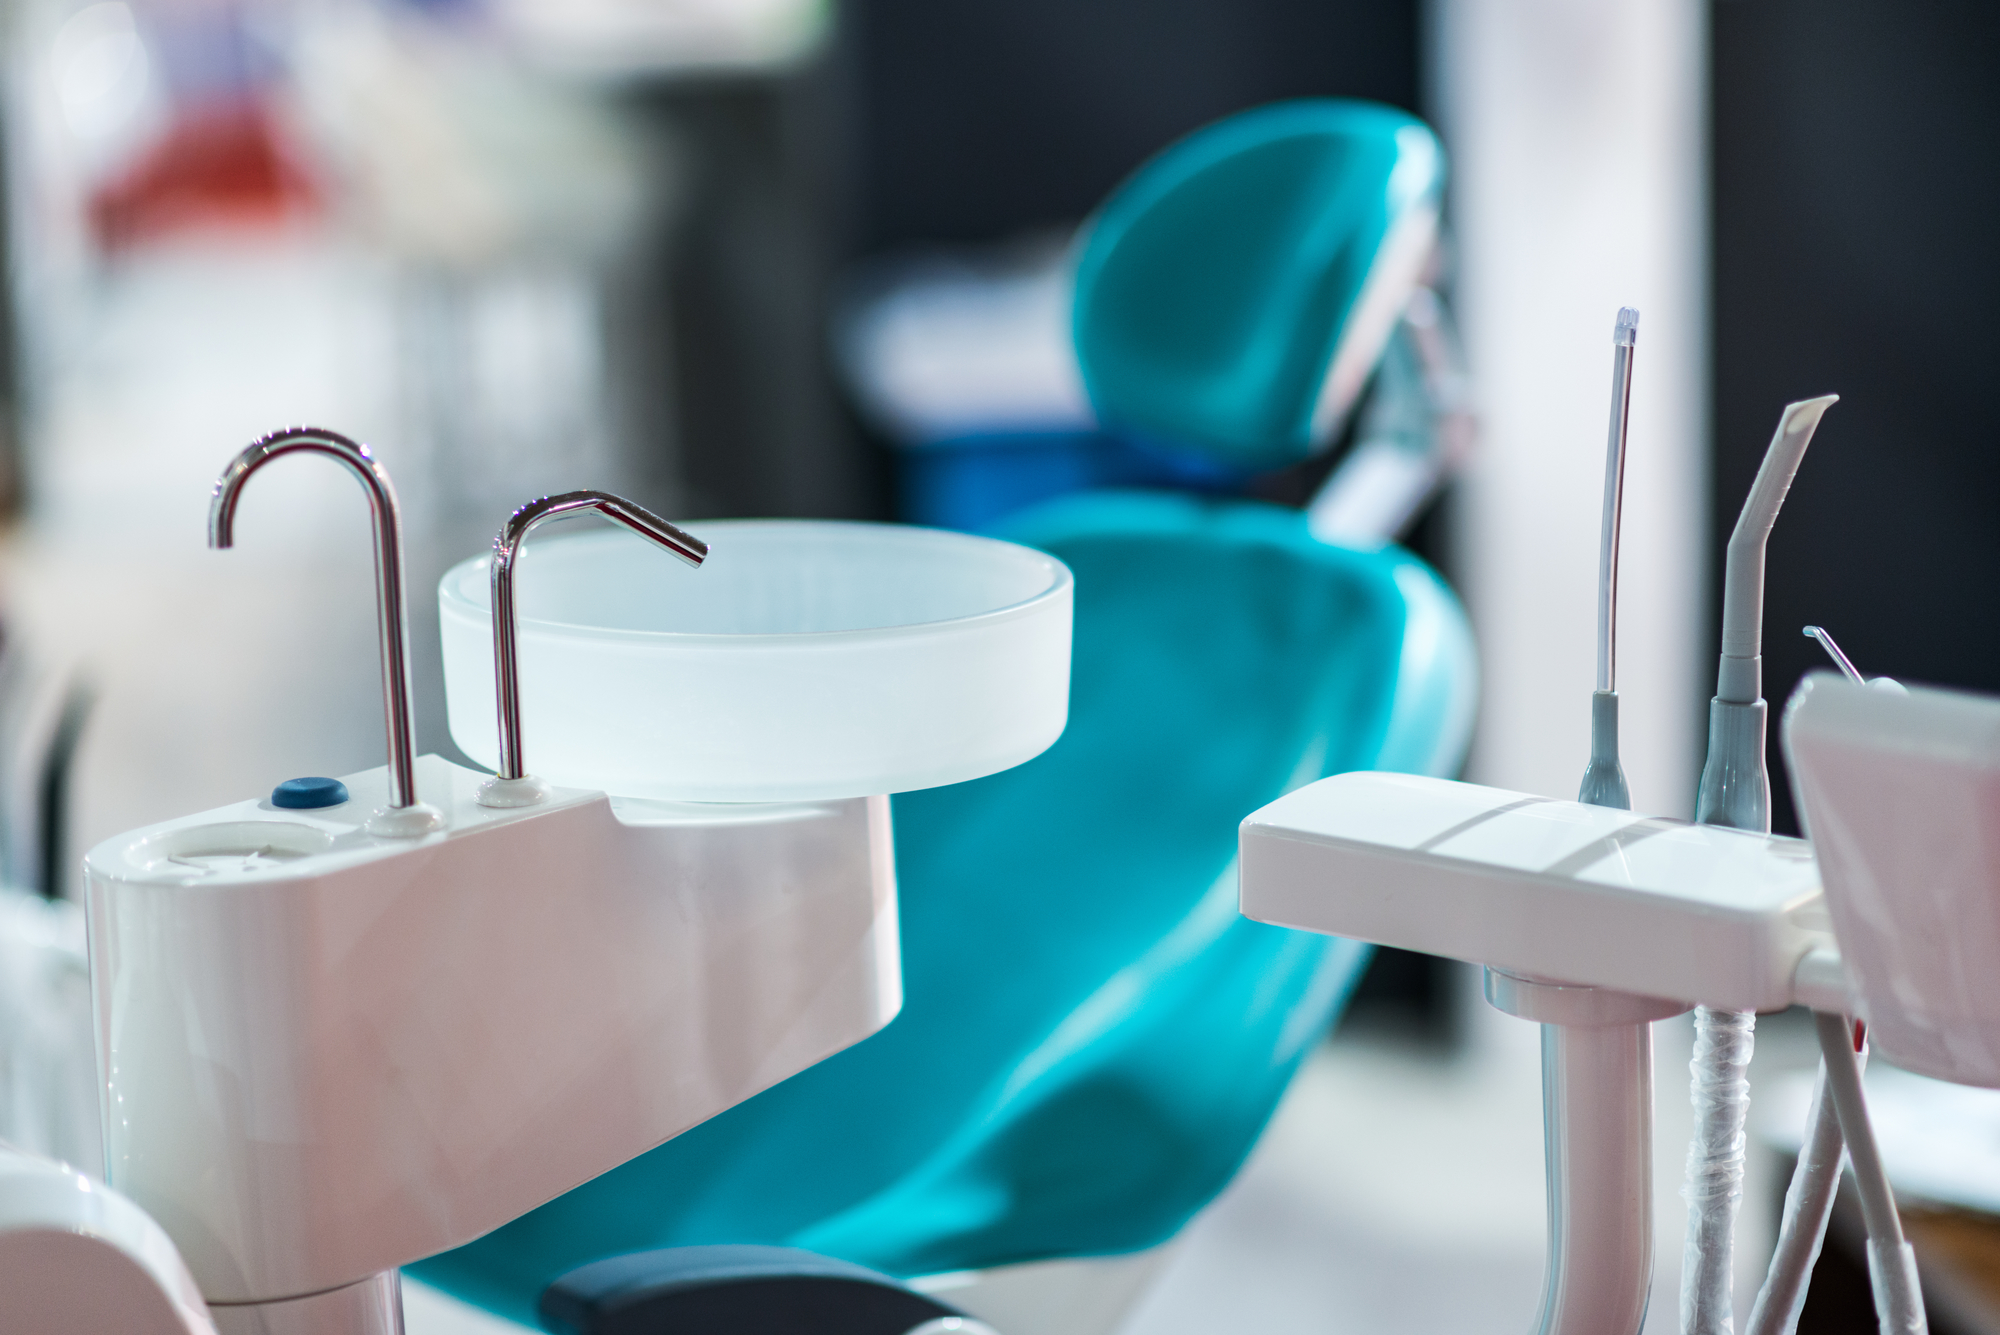 who is a great cosmetic dentist west palm beach?